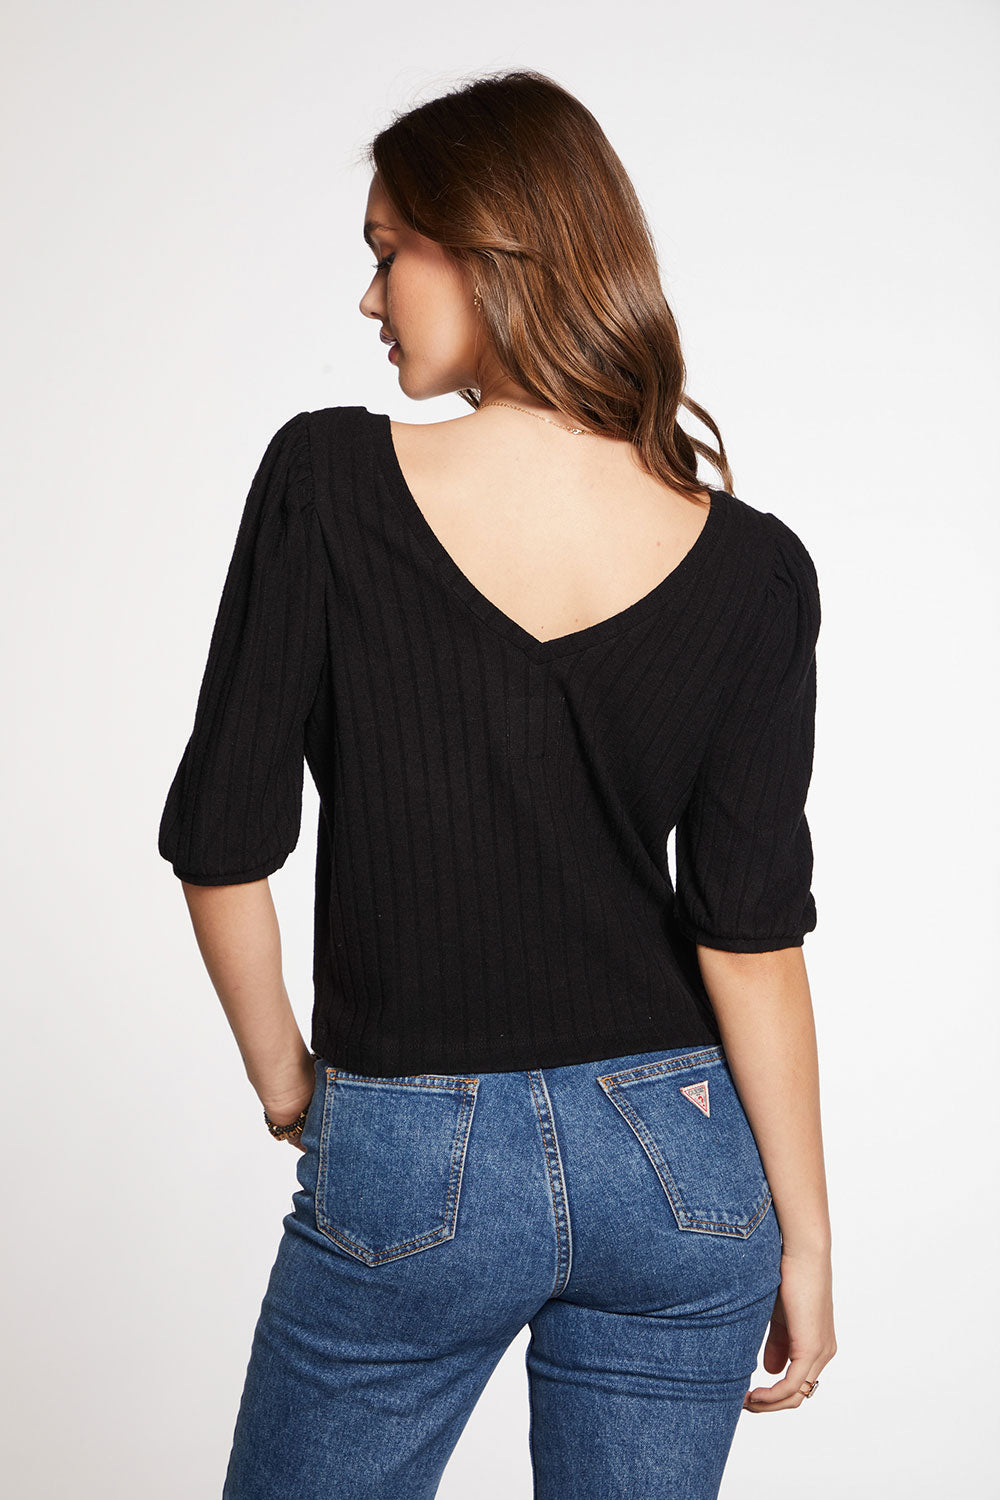 Poor Boy Rib Cropped 3/4 Puff Sleeve V Neck Top WOMENS chaserbrand4.myshopify.com